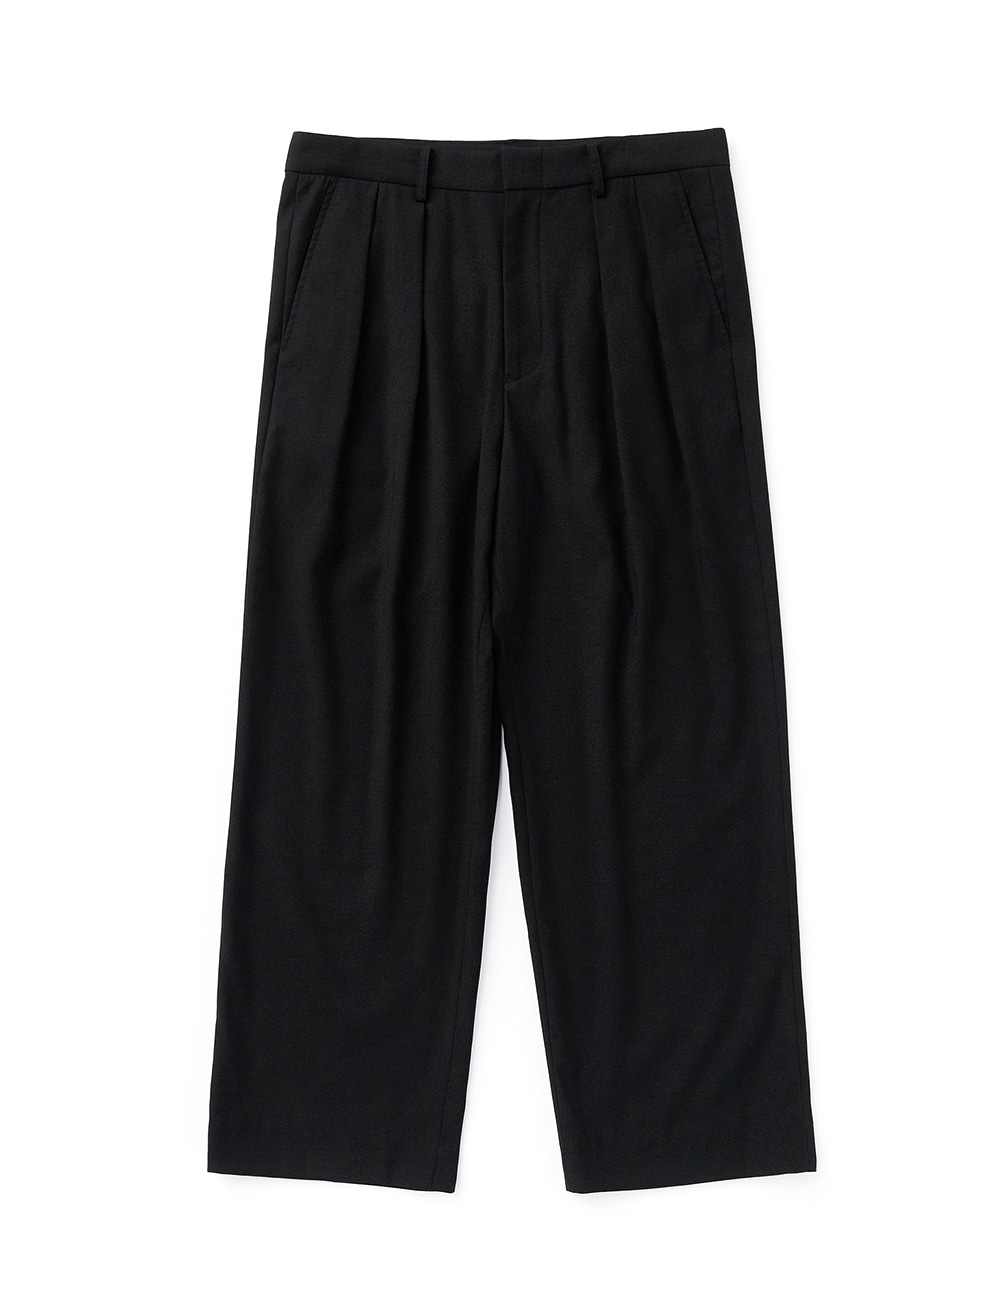 [ESFAI] SO28 2TUCK F WIDE PANTS (BLACK)